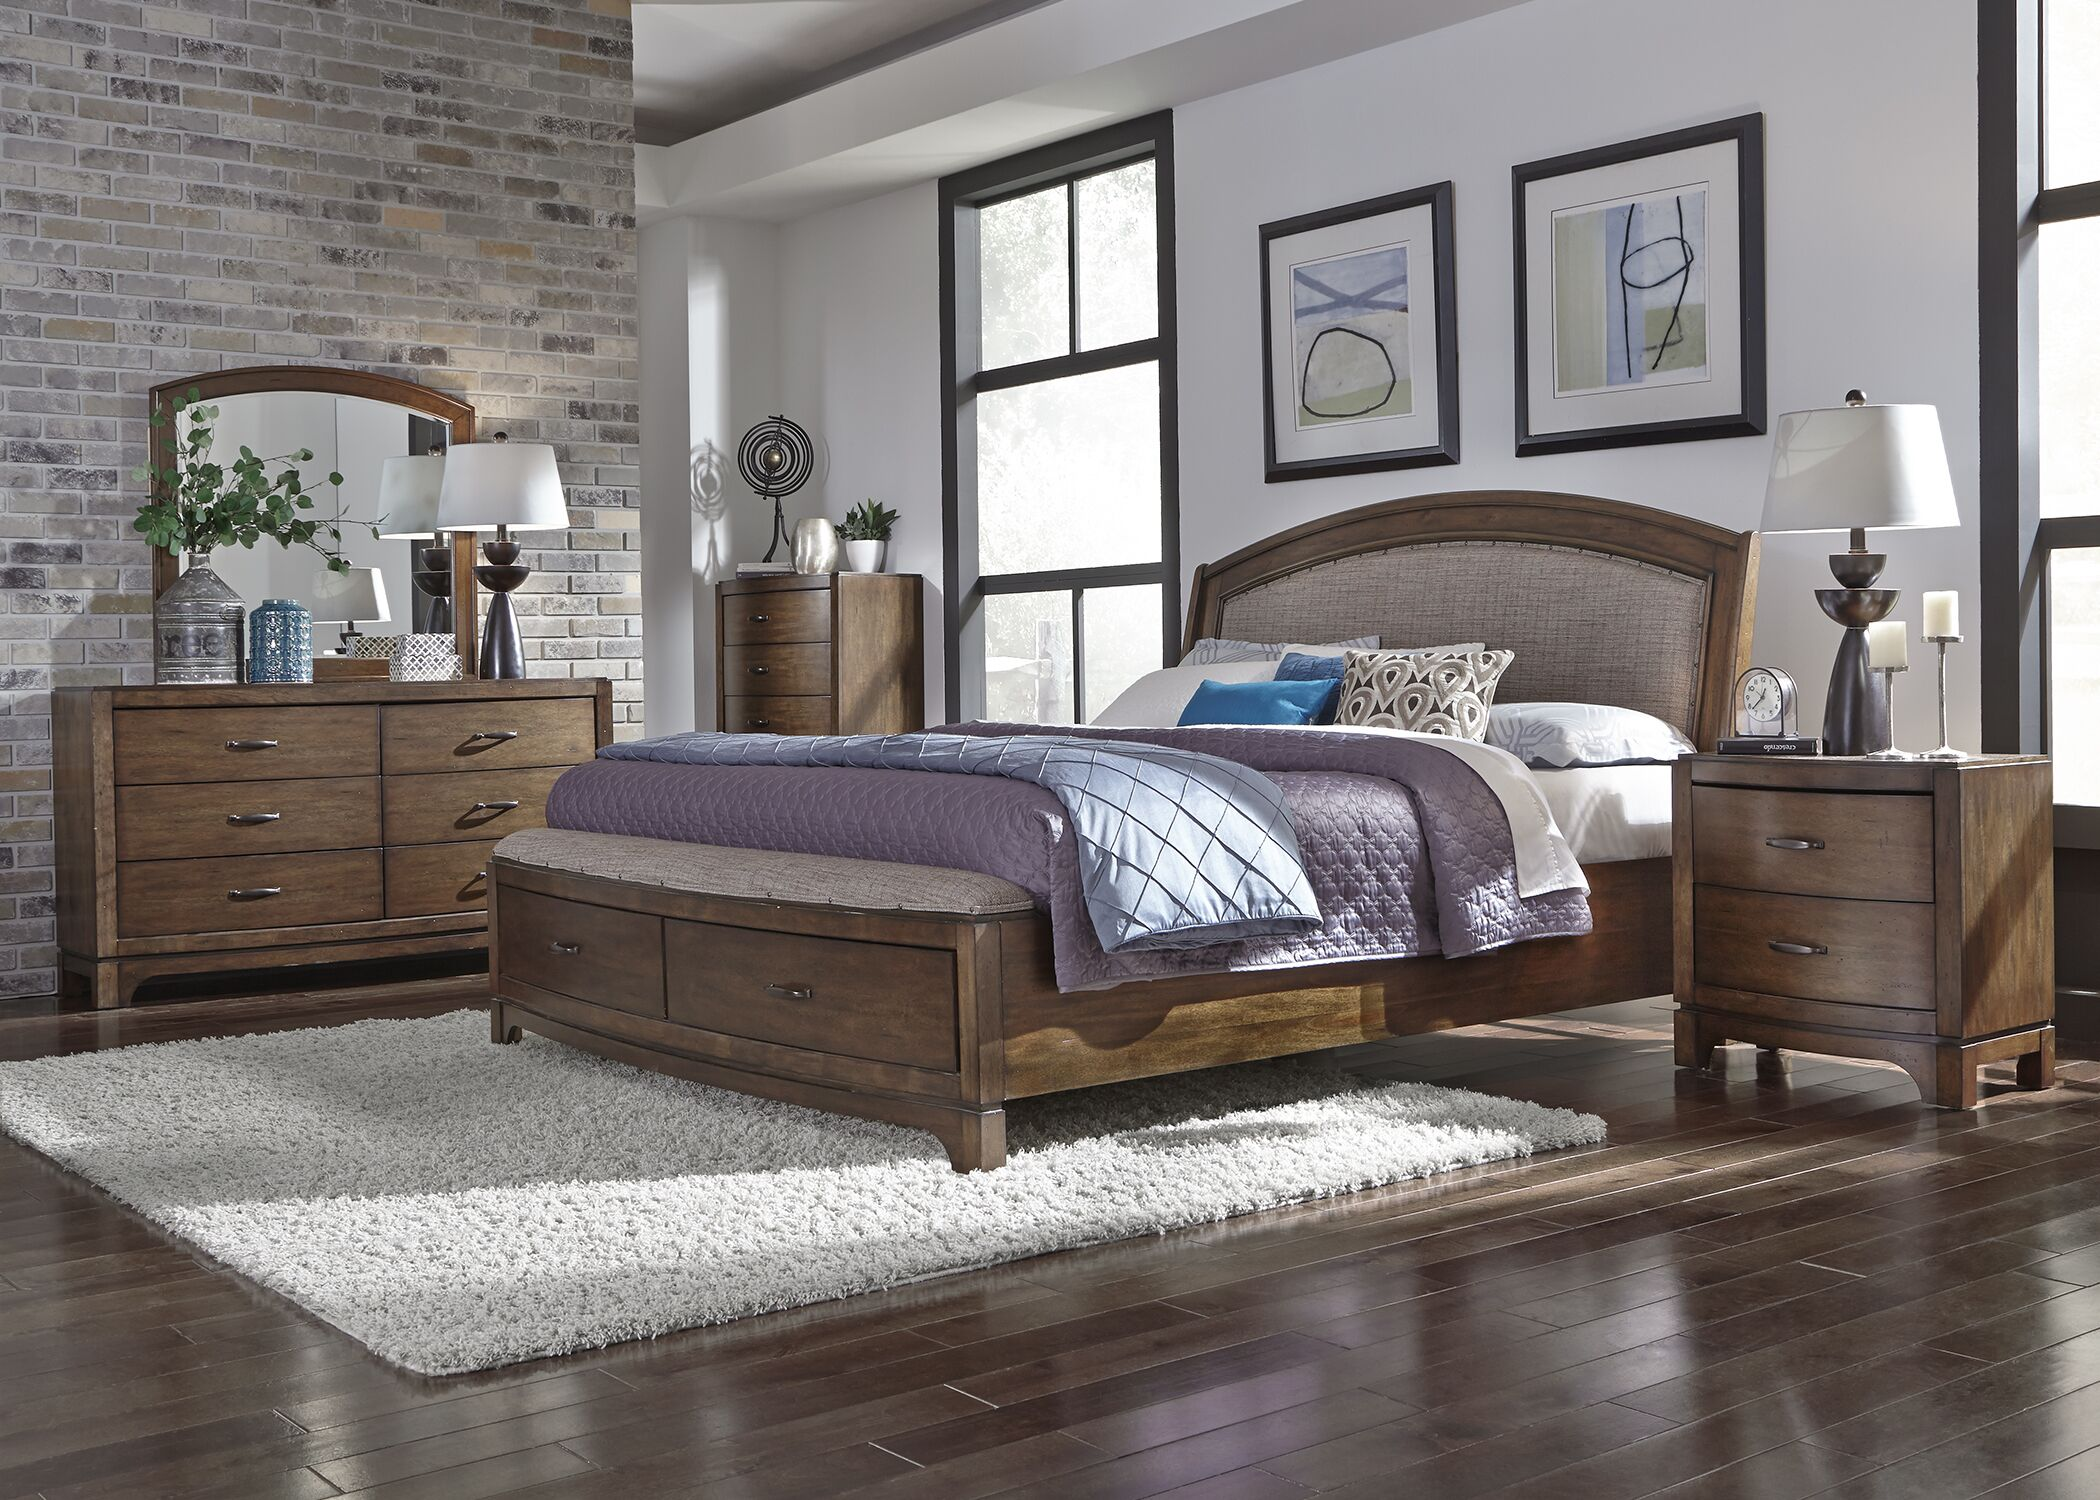 Aranson Upholstered Storage Platform Bed